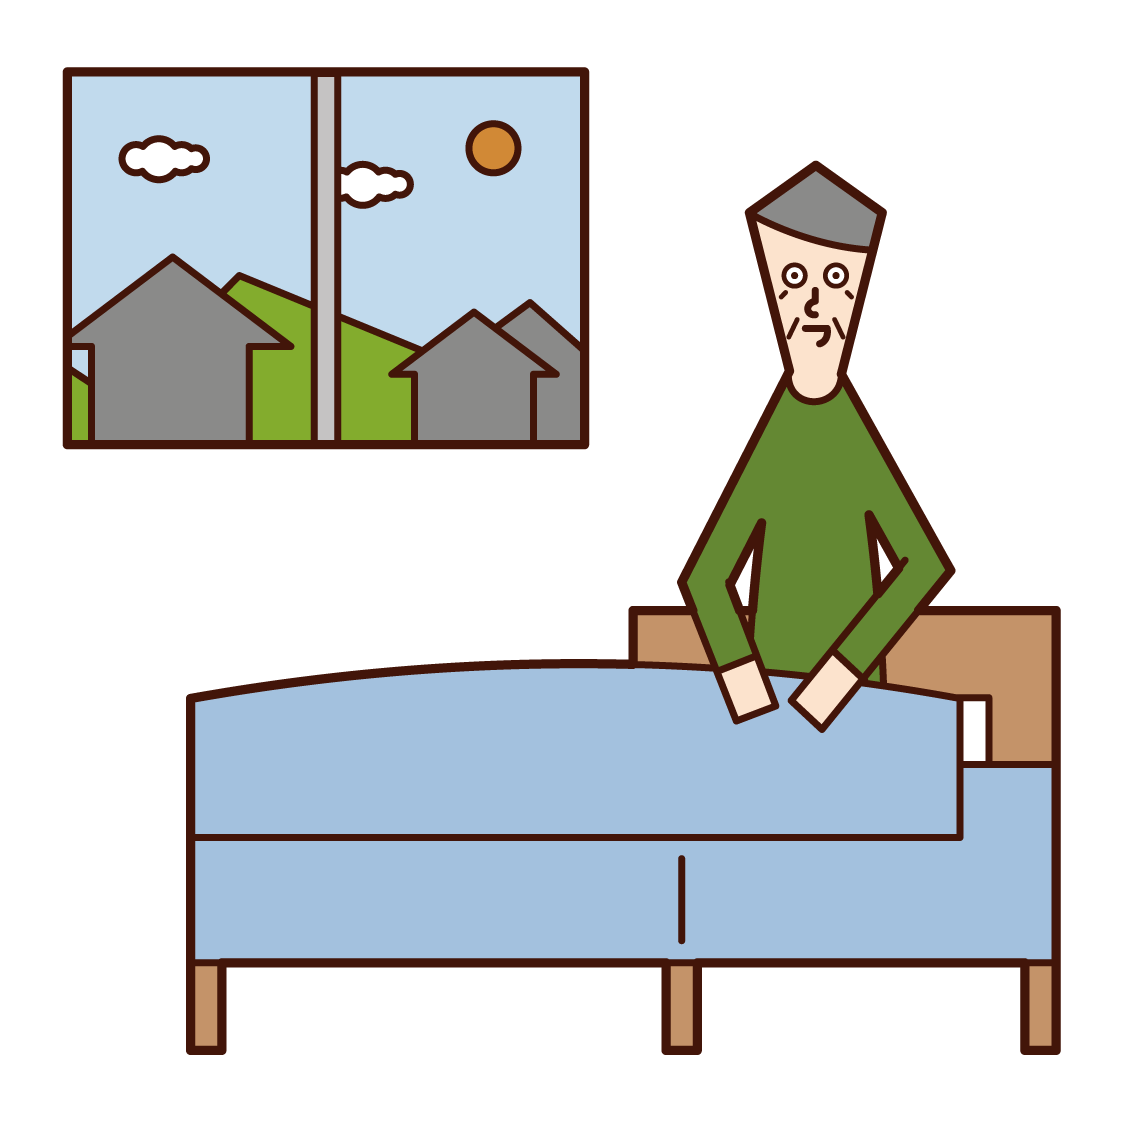 Illustration of a person (grandfather) who wakes up